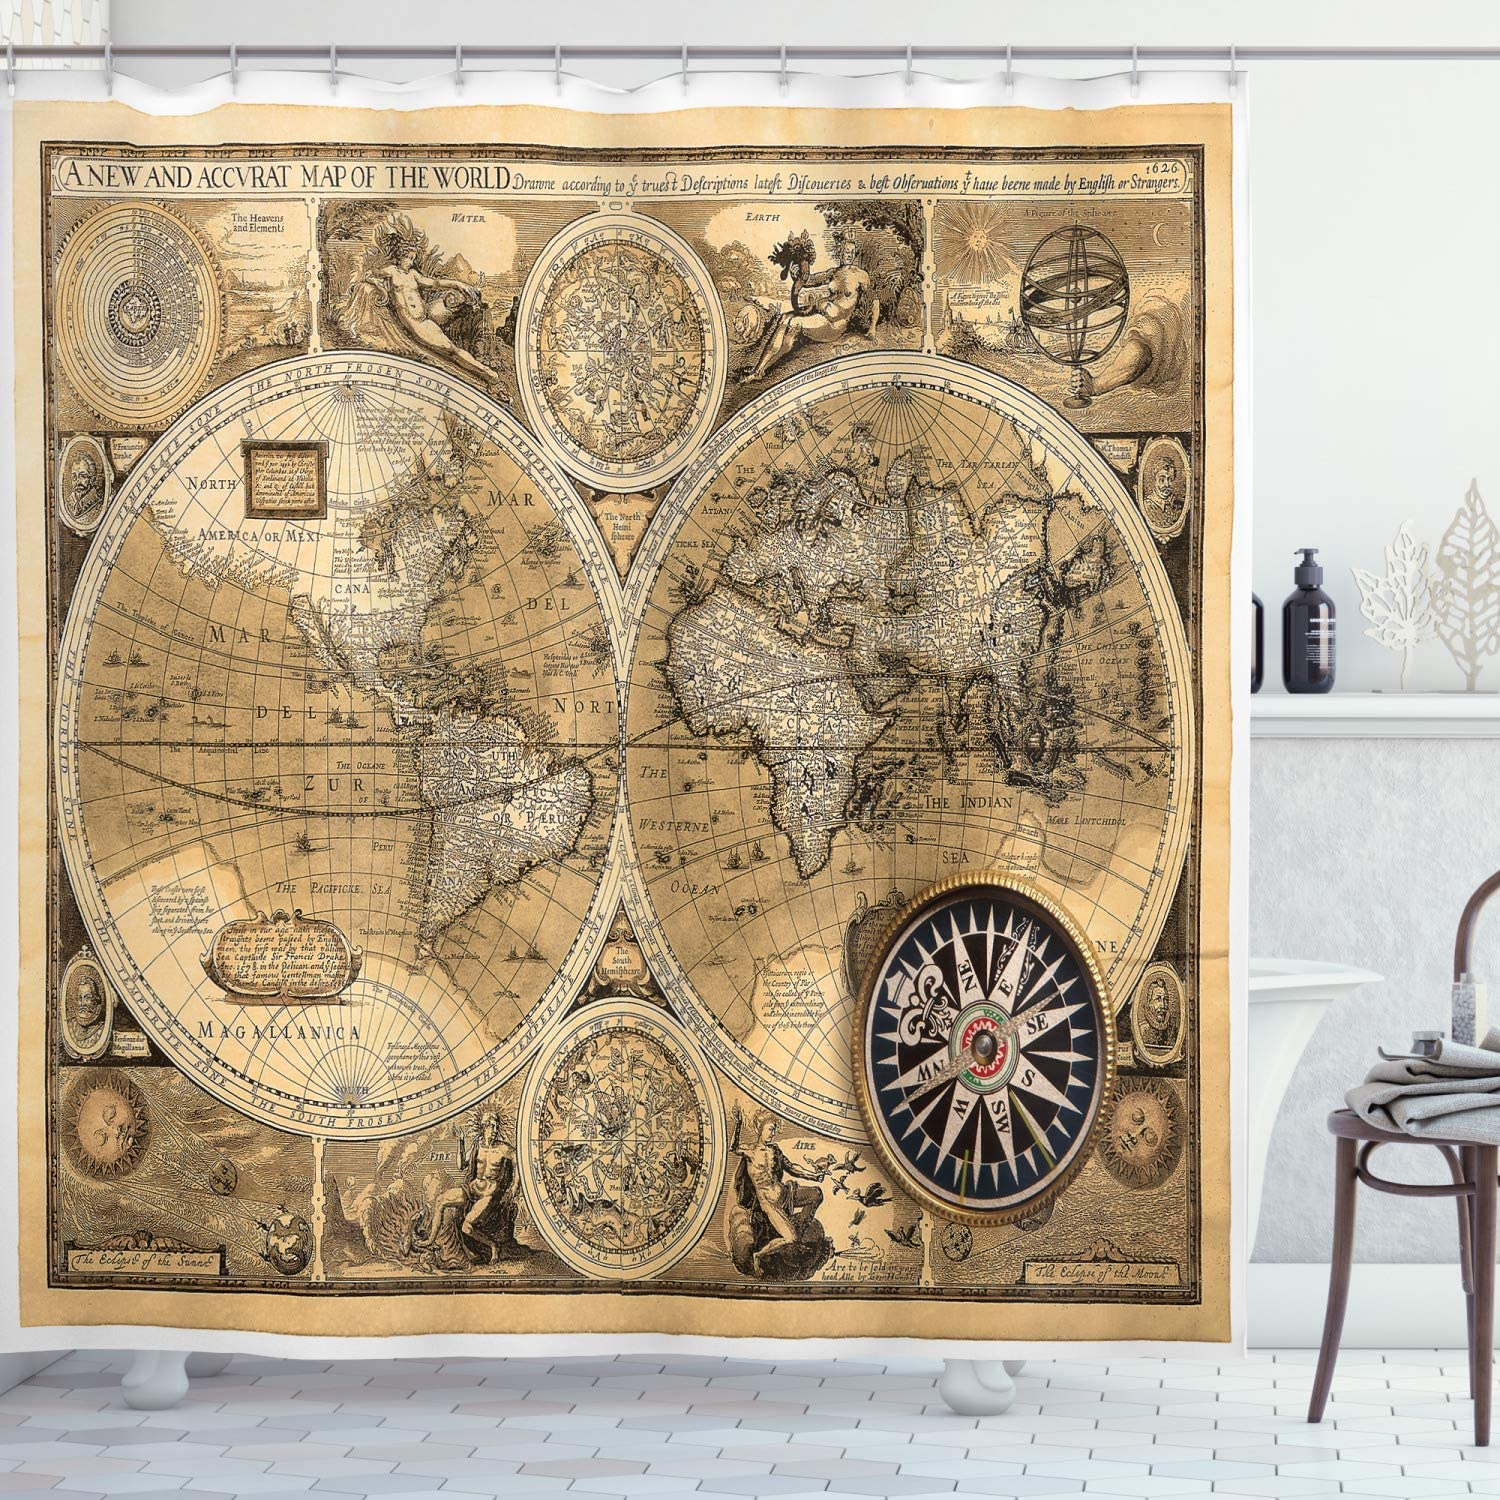 Ambesonne Wanderlust Shower Curtain, Old Vintage Print os Map by 1626 a New and Accvrat World Historical Manuscript Art Design, Cloth Fabric Bathroom Decor Set with Hooks, 84